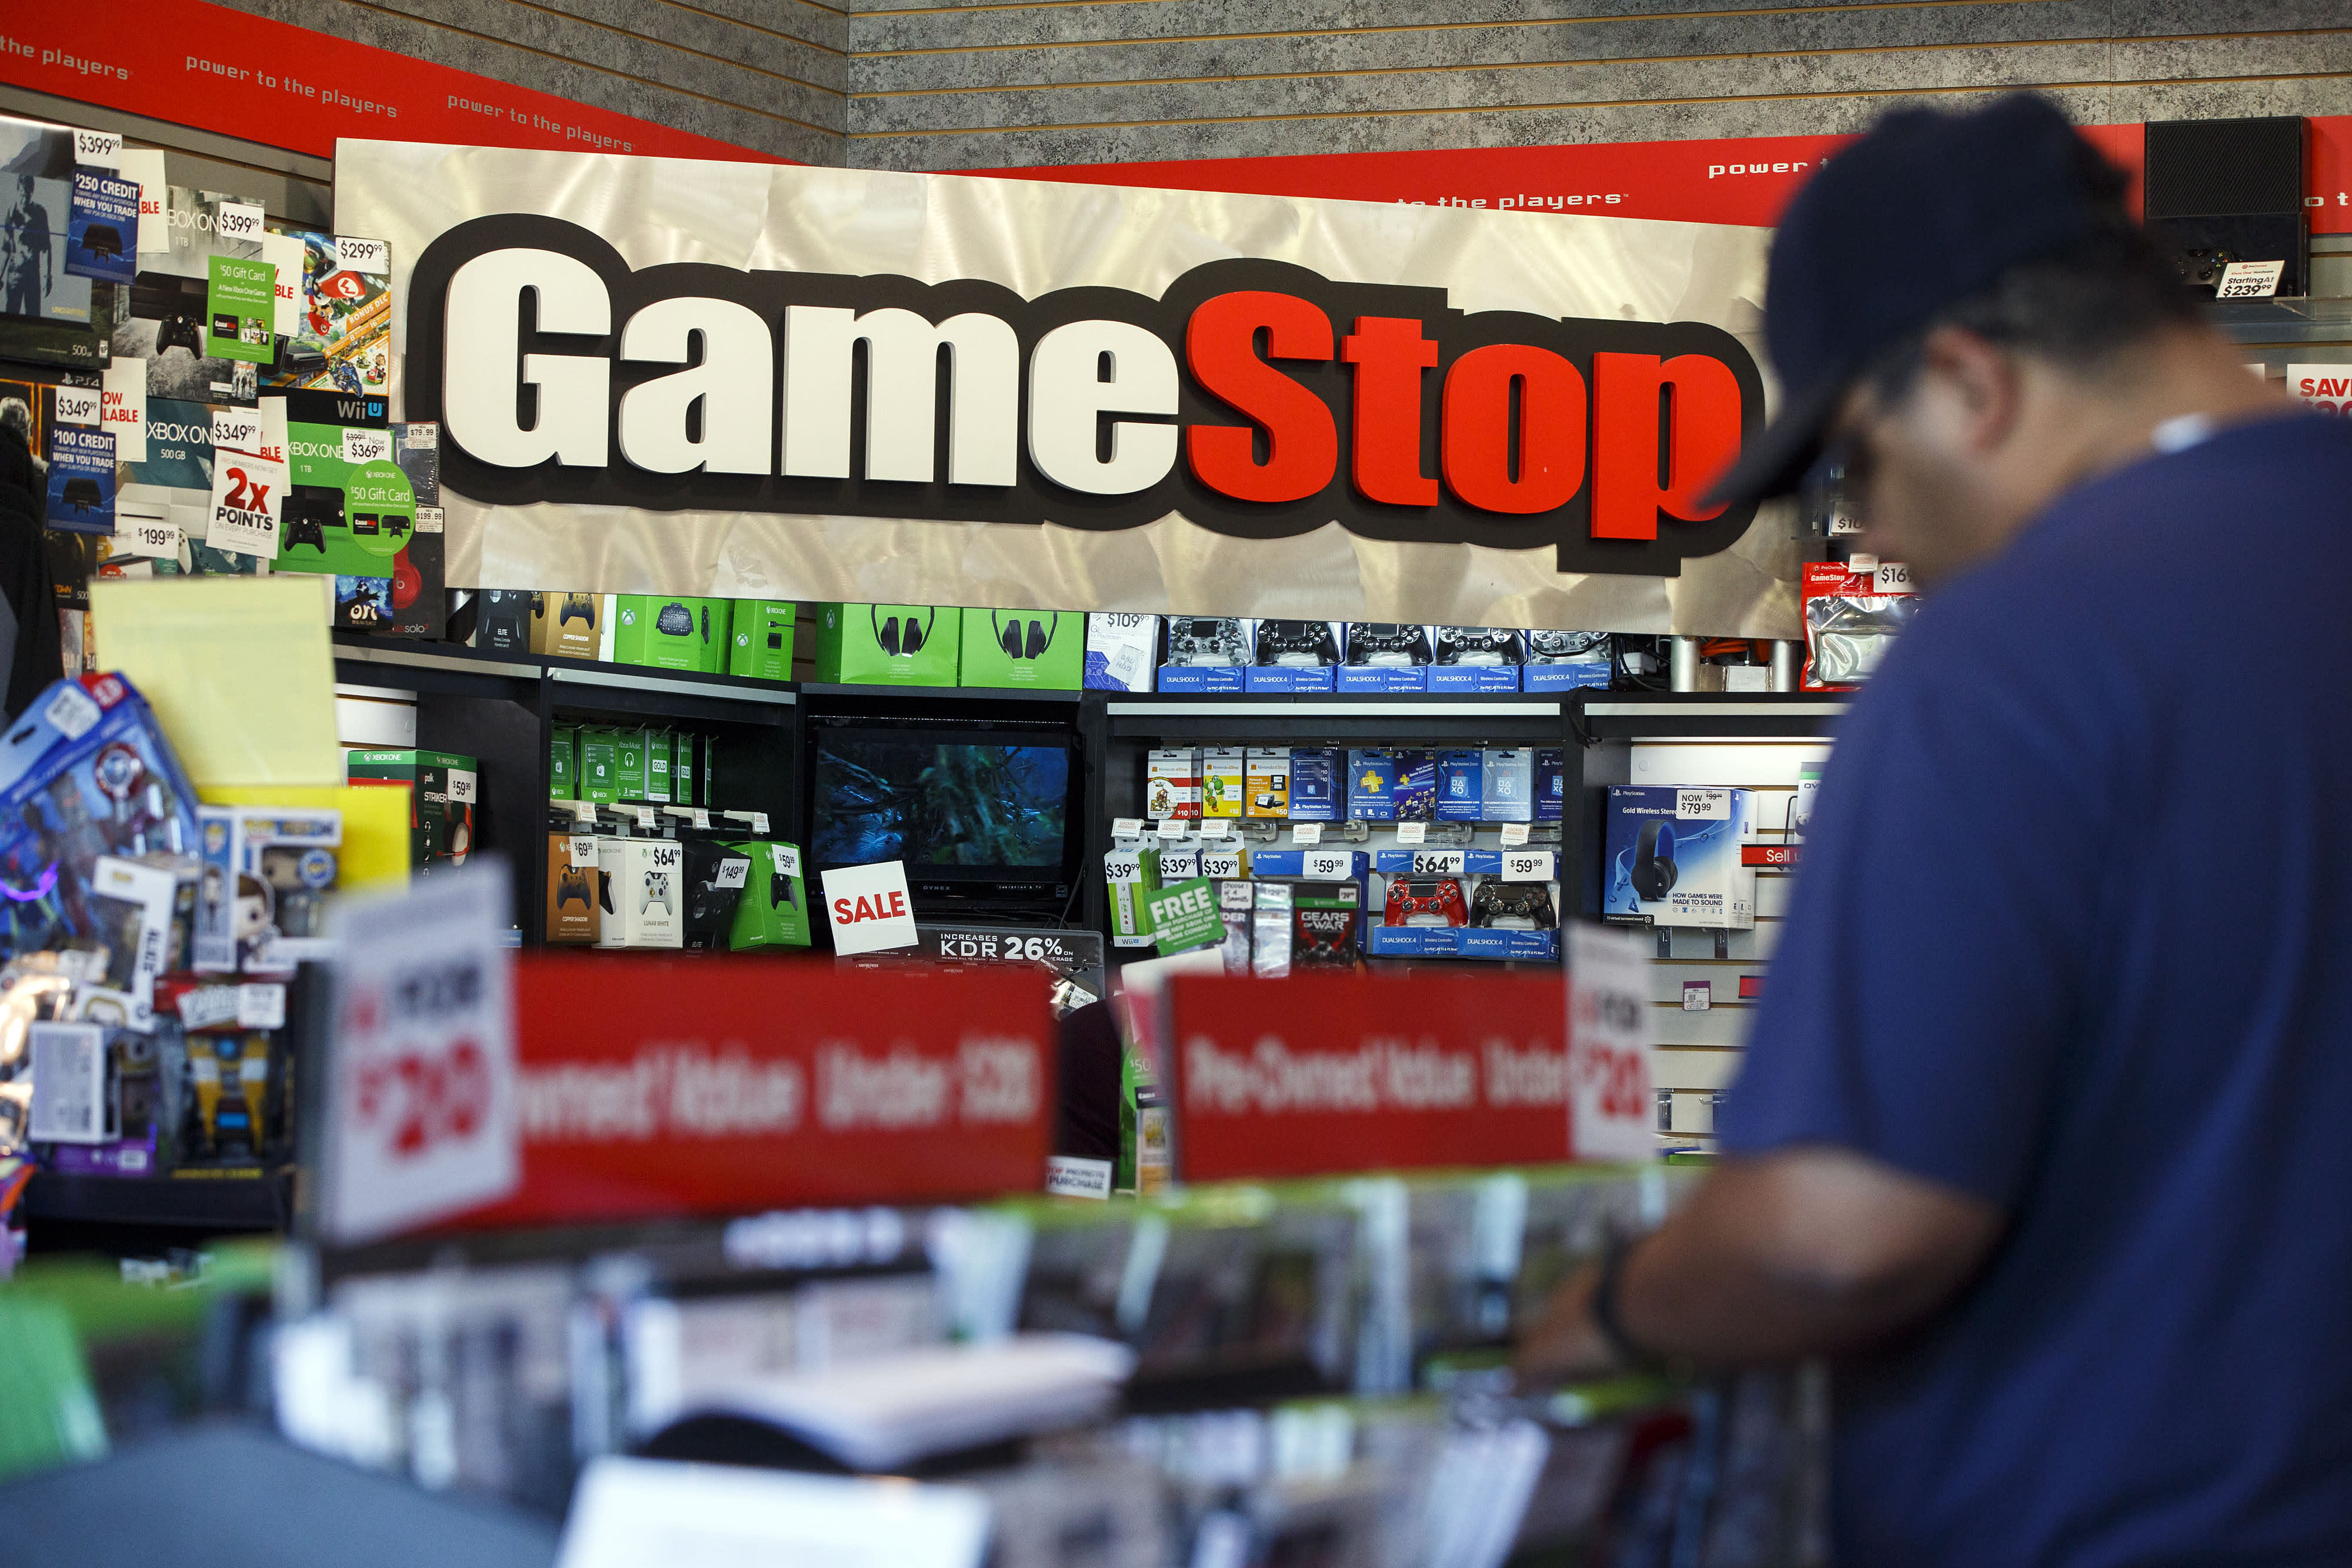 GameStop to close up to 200 stores by year's end